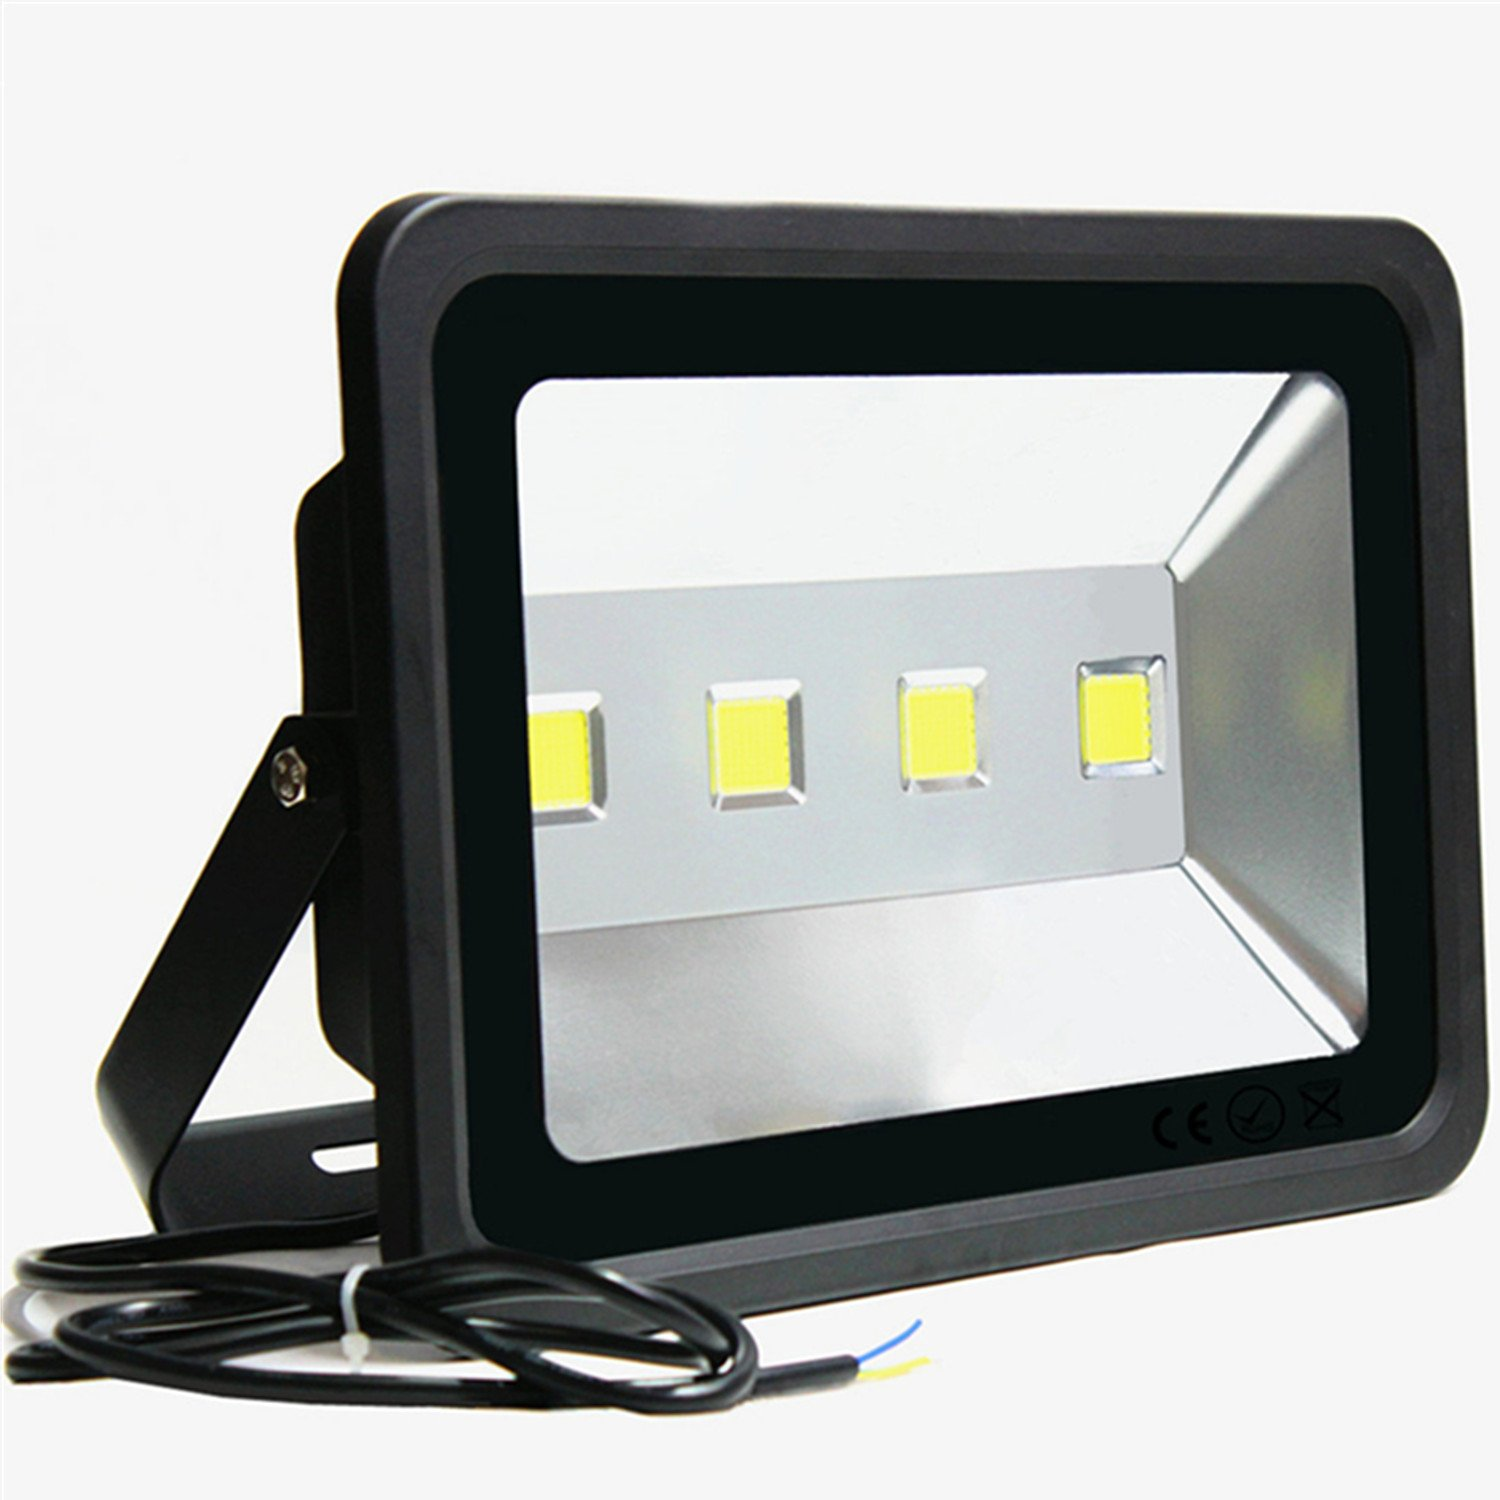 LED Flood Light 200W Outdoor –Jiuding SUPER BRIGHT 6000K Sunlight White 1000W Equivalent ,Waterproof Flood Lights Used for Party Playground 2 year warranty